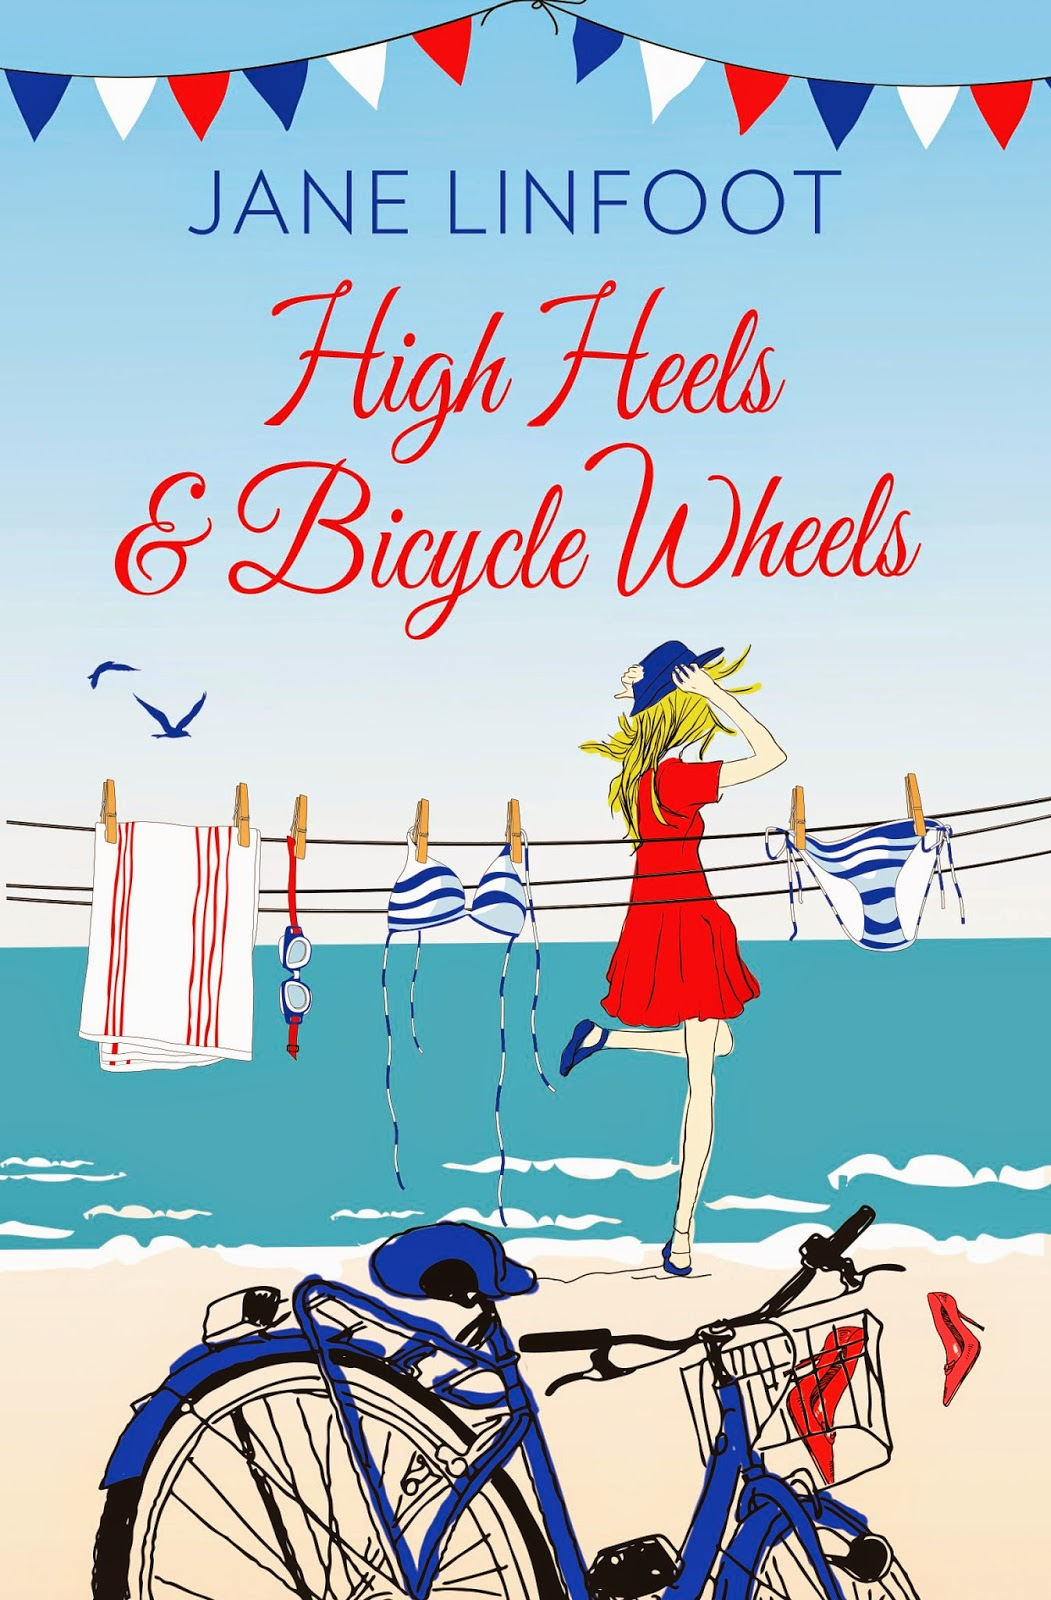 https://www.goodreads.com/book/show/22640328-high-heels-bicycle-wheels